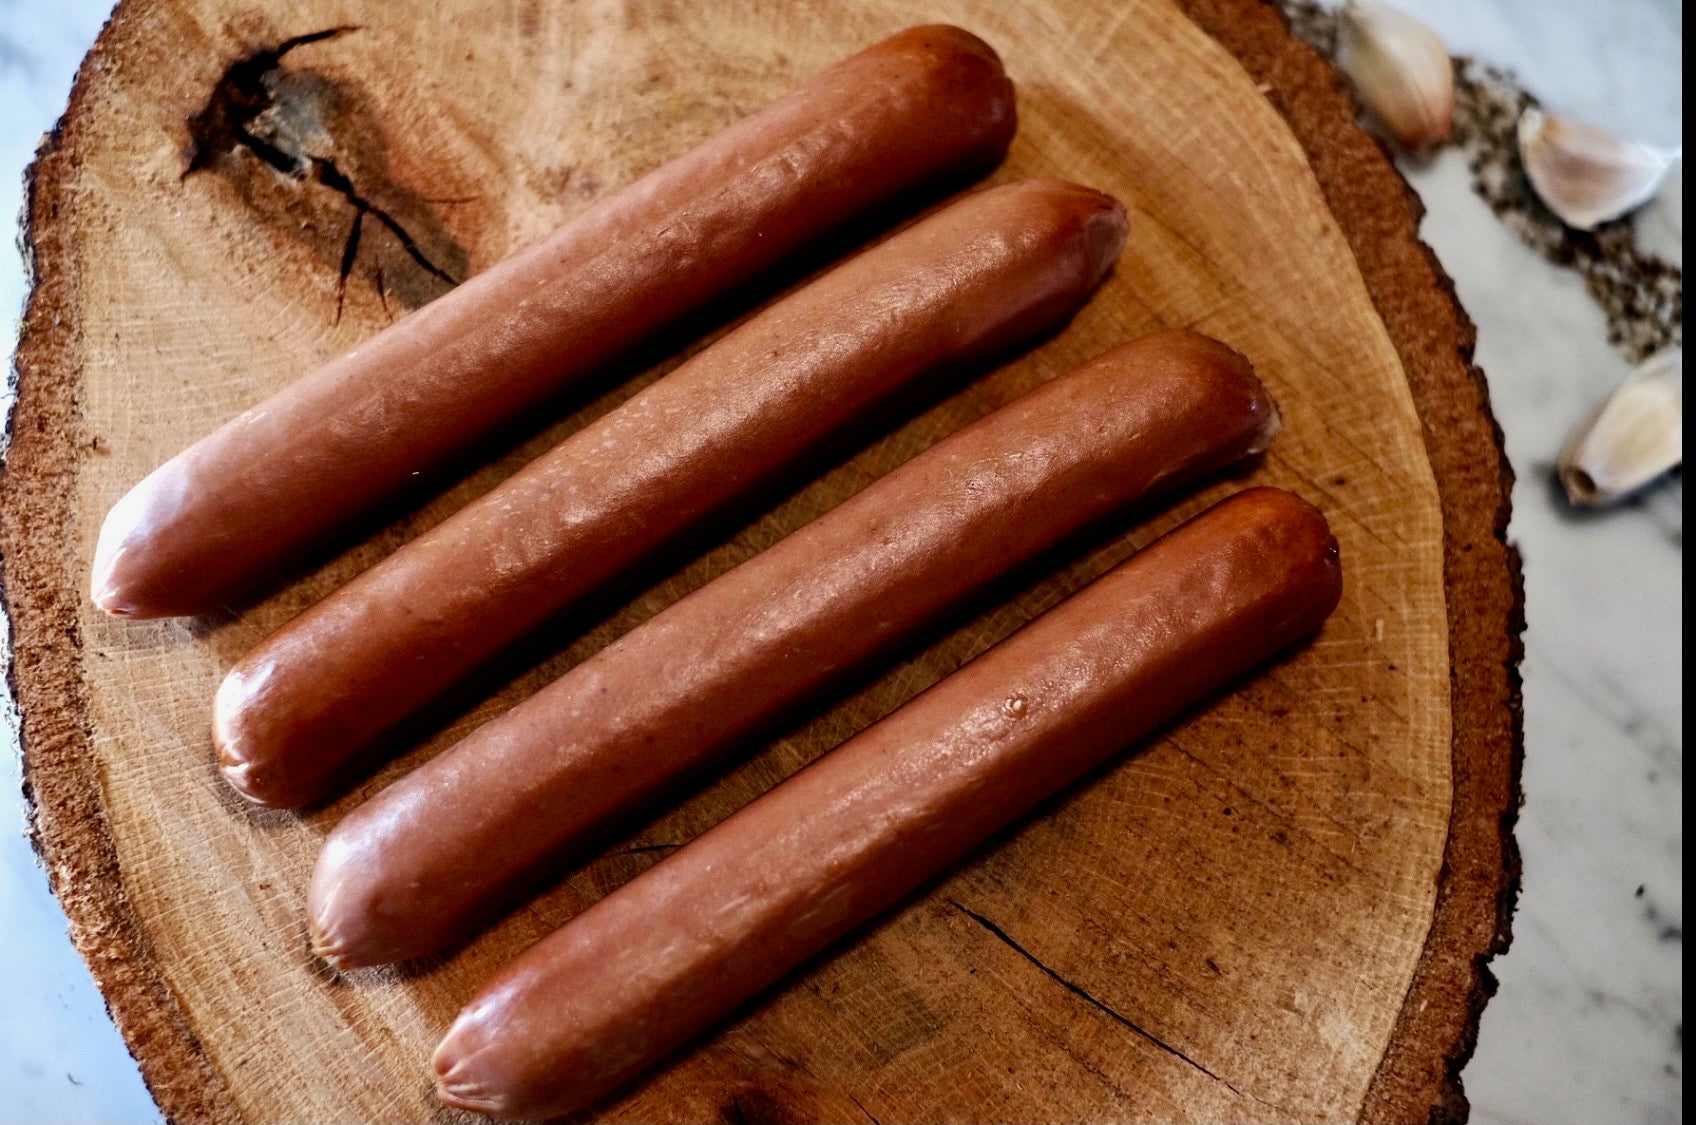 Uncured Beef Hot Dogs